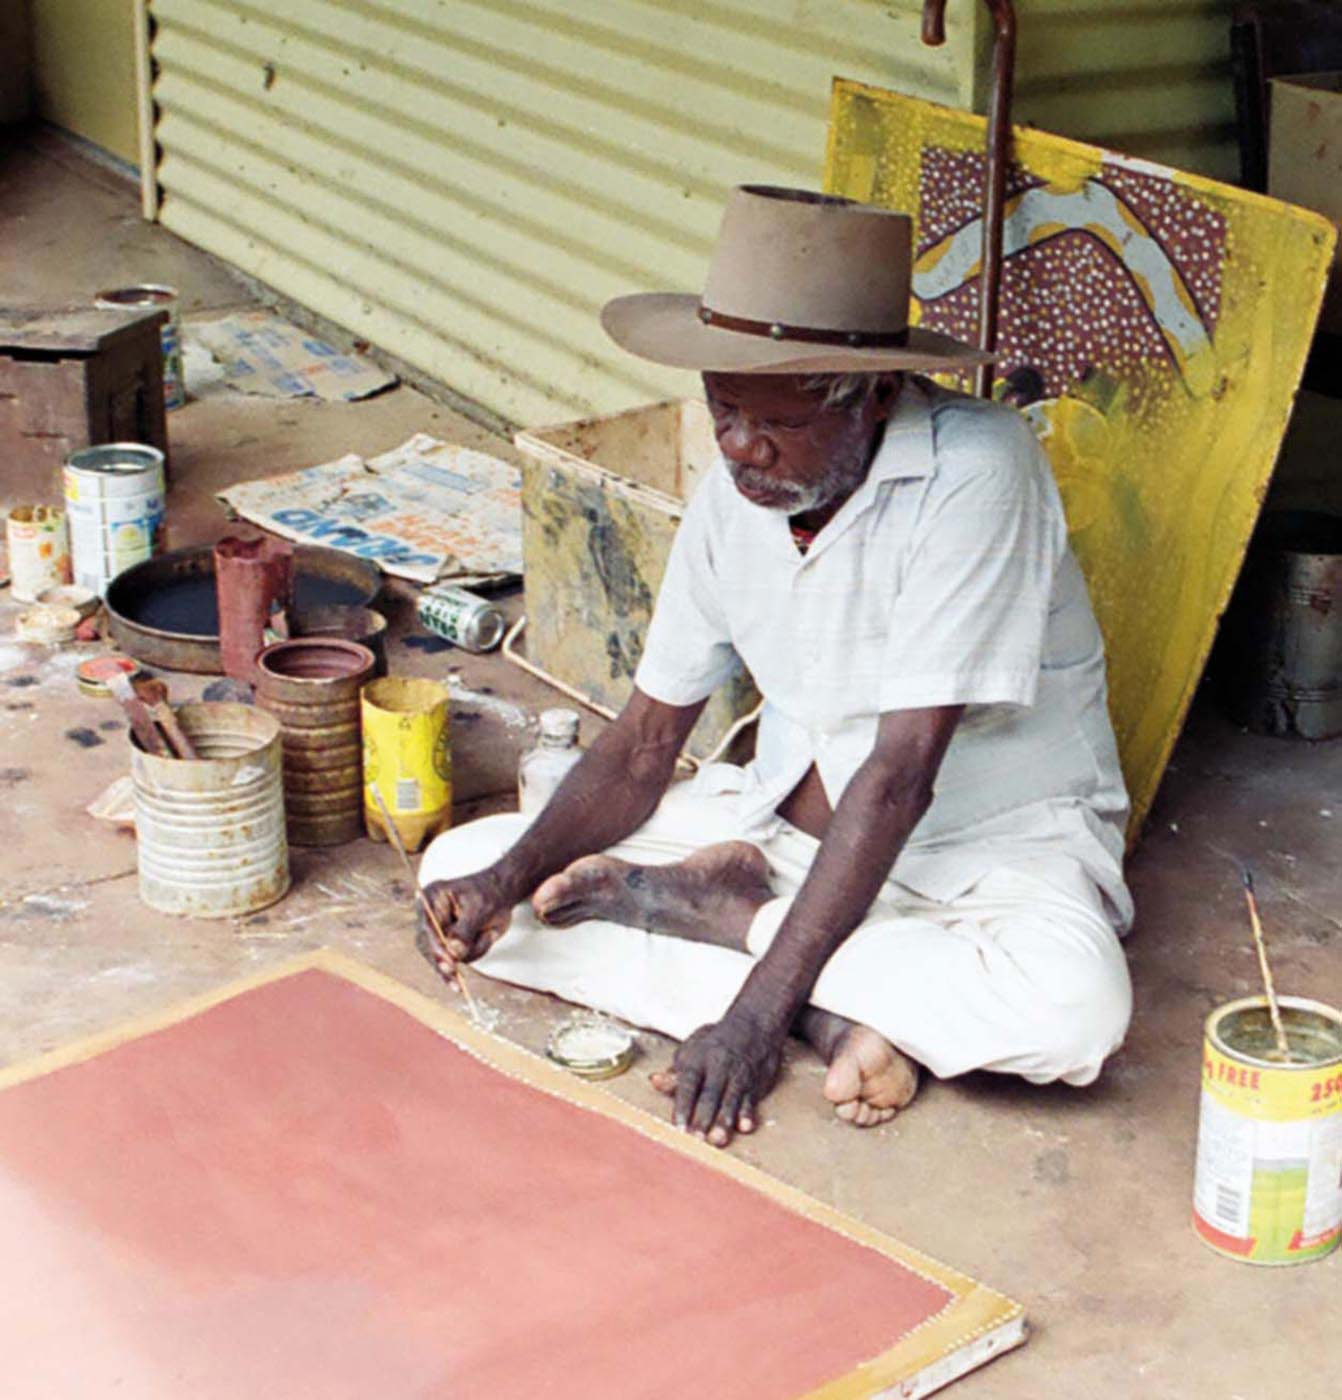 Colour photograph of a man sitting on the ground and painting.